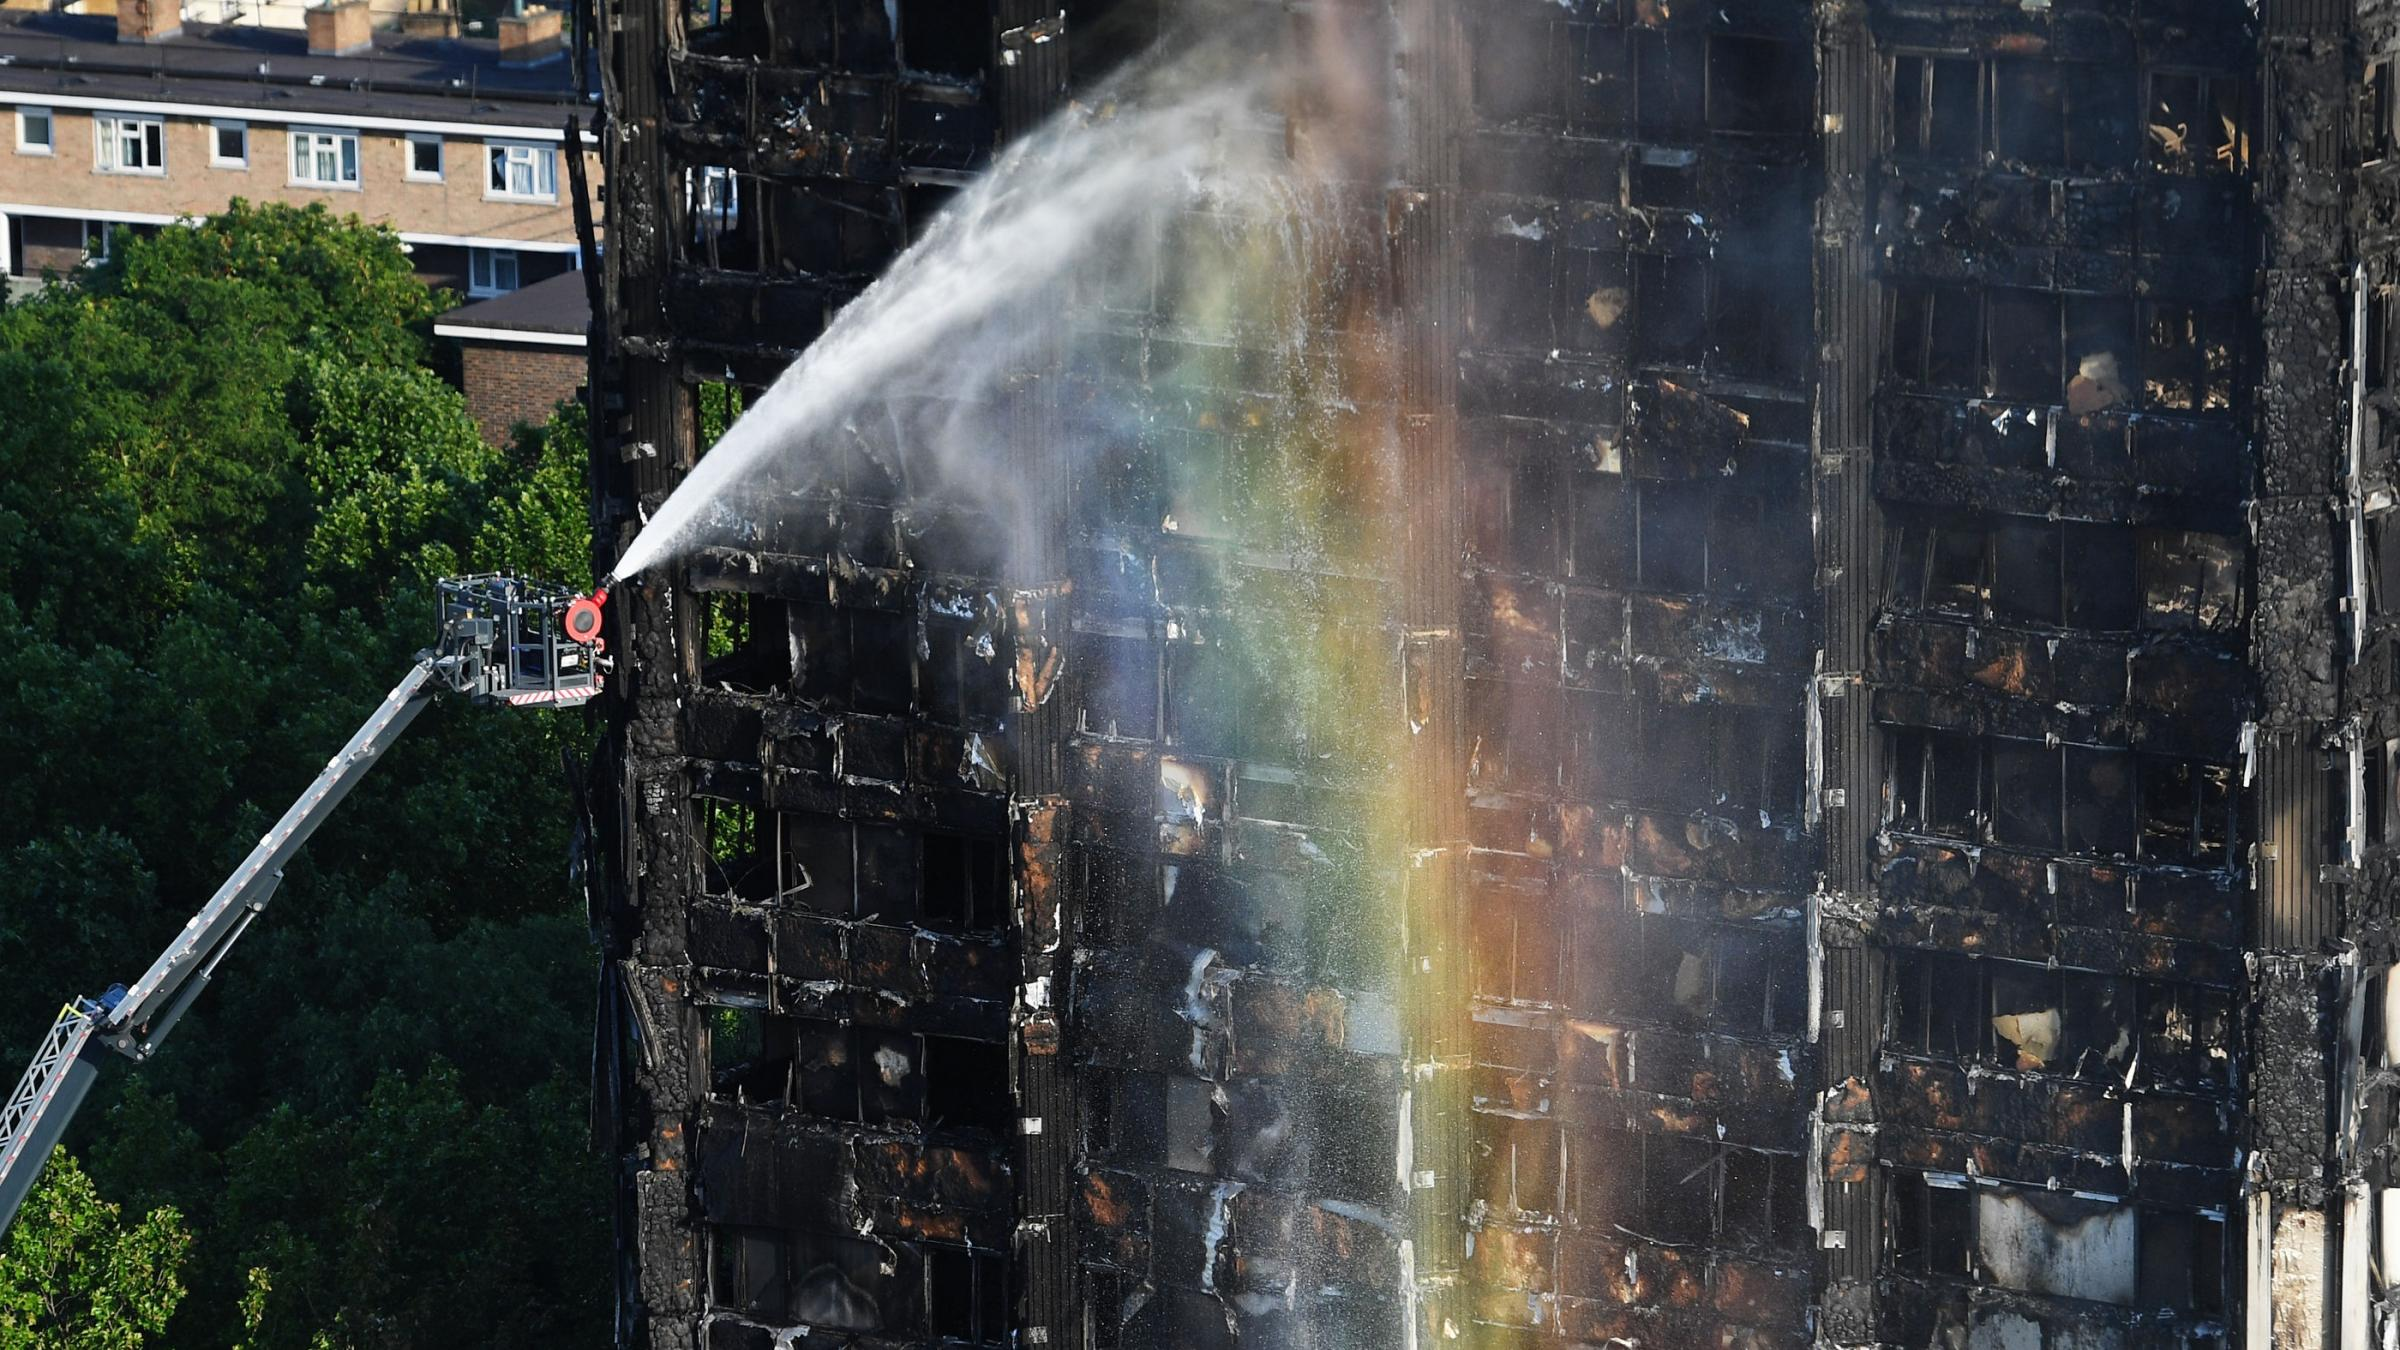 17 dead, public investigation sought in London tower fire